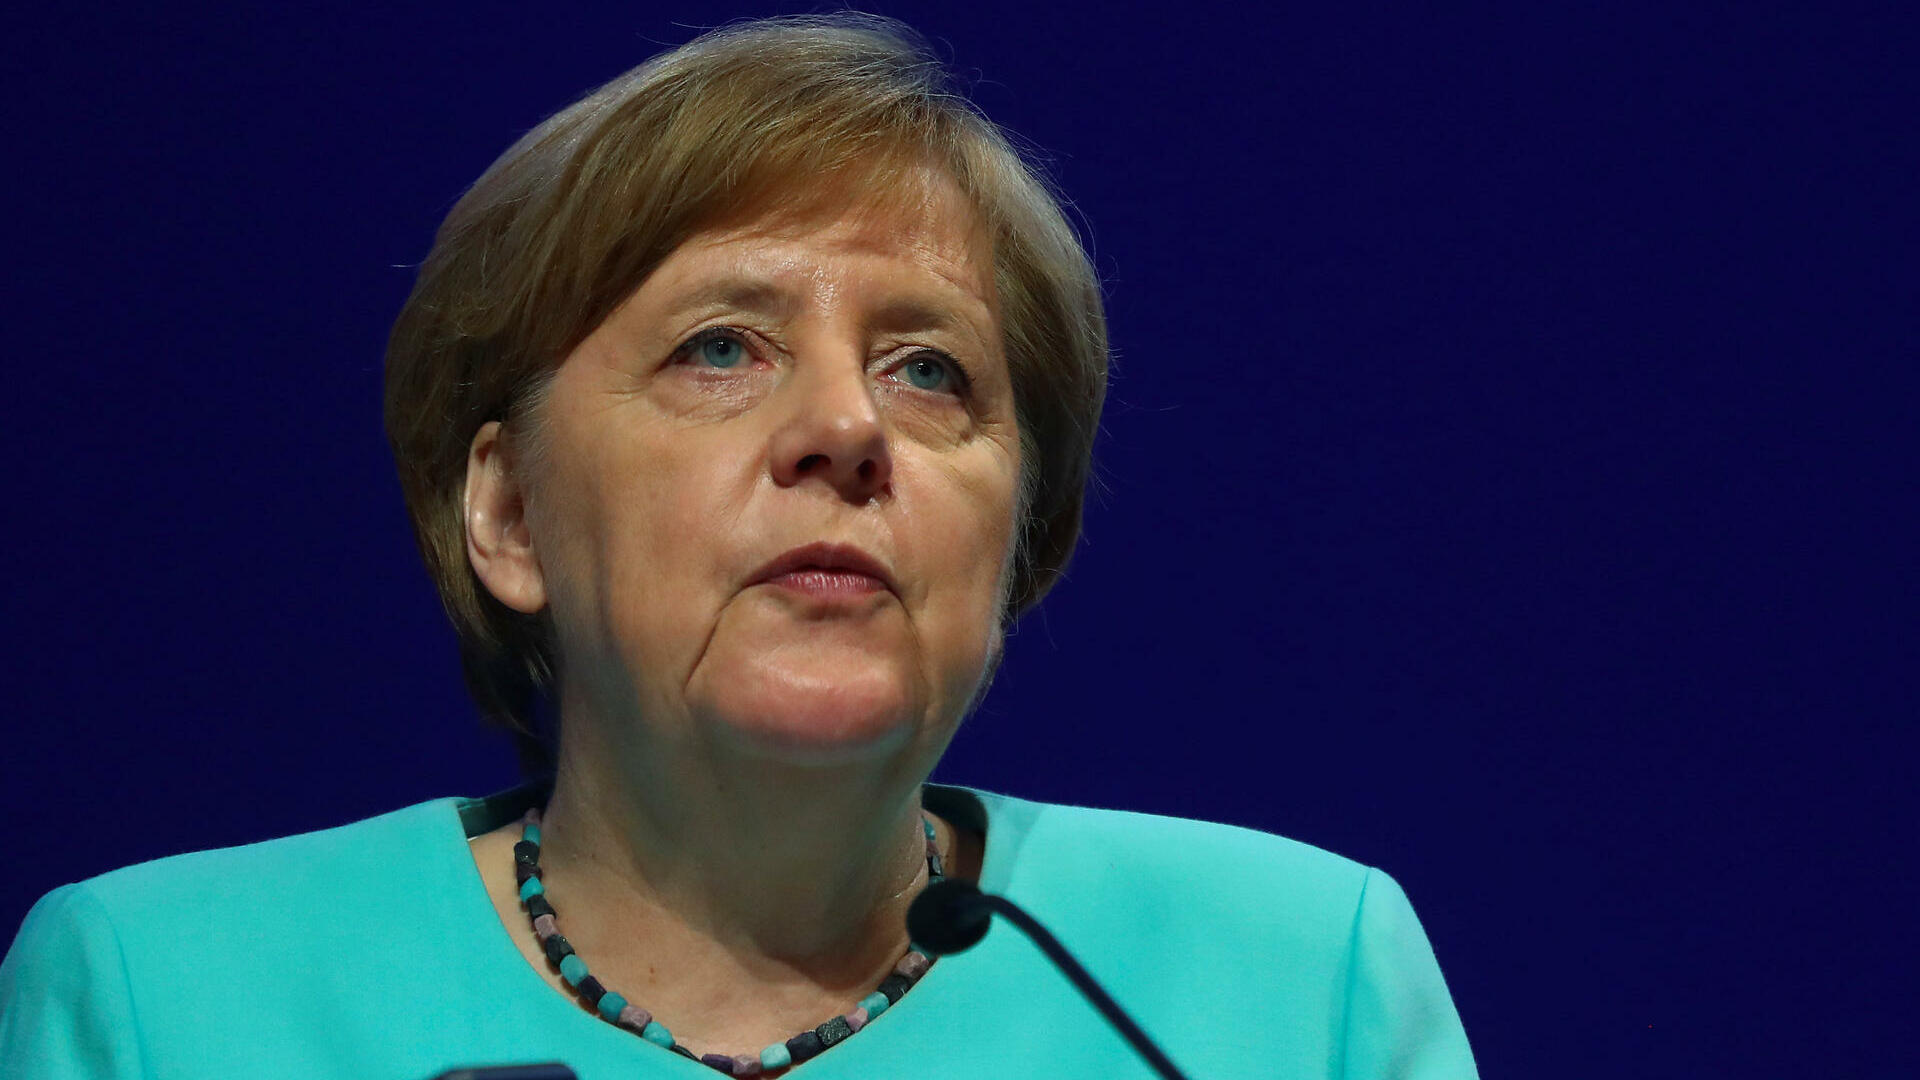 Angela Merkel Quelle: REUTERS